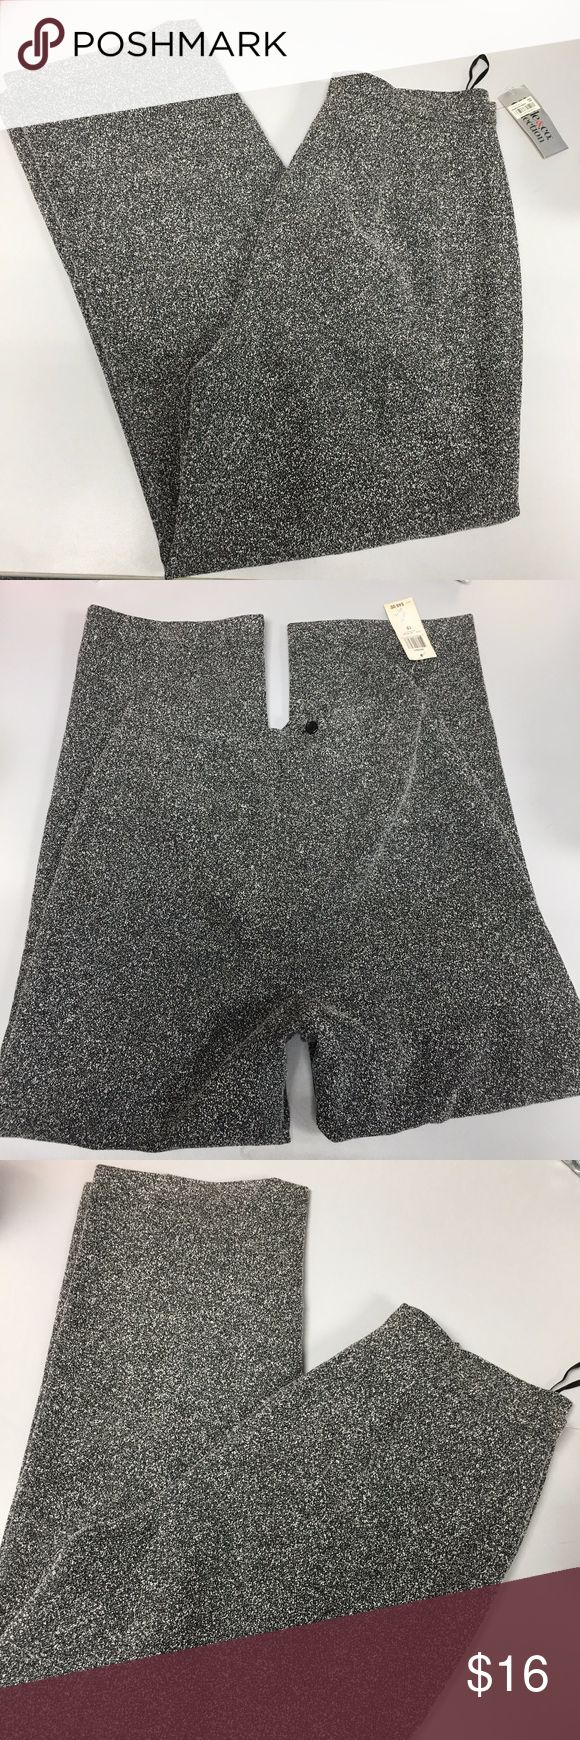 """NWT Vintage Style & Co Dress Pants Slacks Career NWTs!  Brand - Style & Co. Size - 10  waist - 14.25"""" bottom leg width - 9"""" hips - 21"""" rise - 14.5"""" inseam - 29.5"""" Style & Co Pants Trousers"""